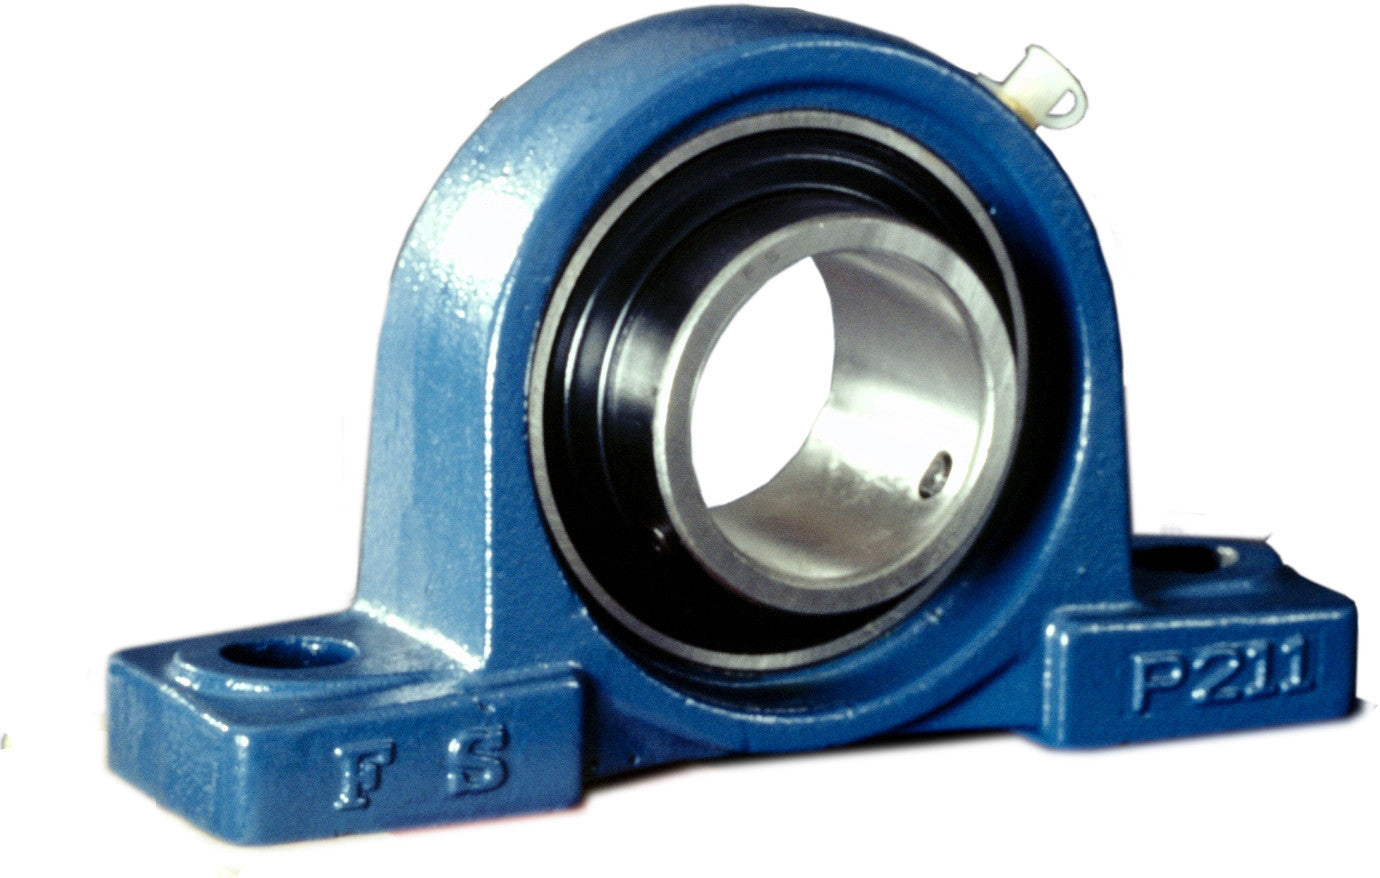 ucp214-44-2-3-4-cast-imperial-2-bolt-iron-pillow-block-housed-bearing